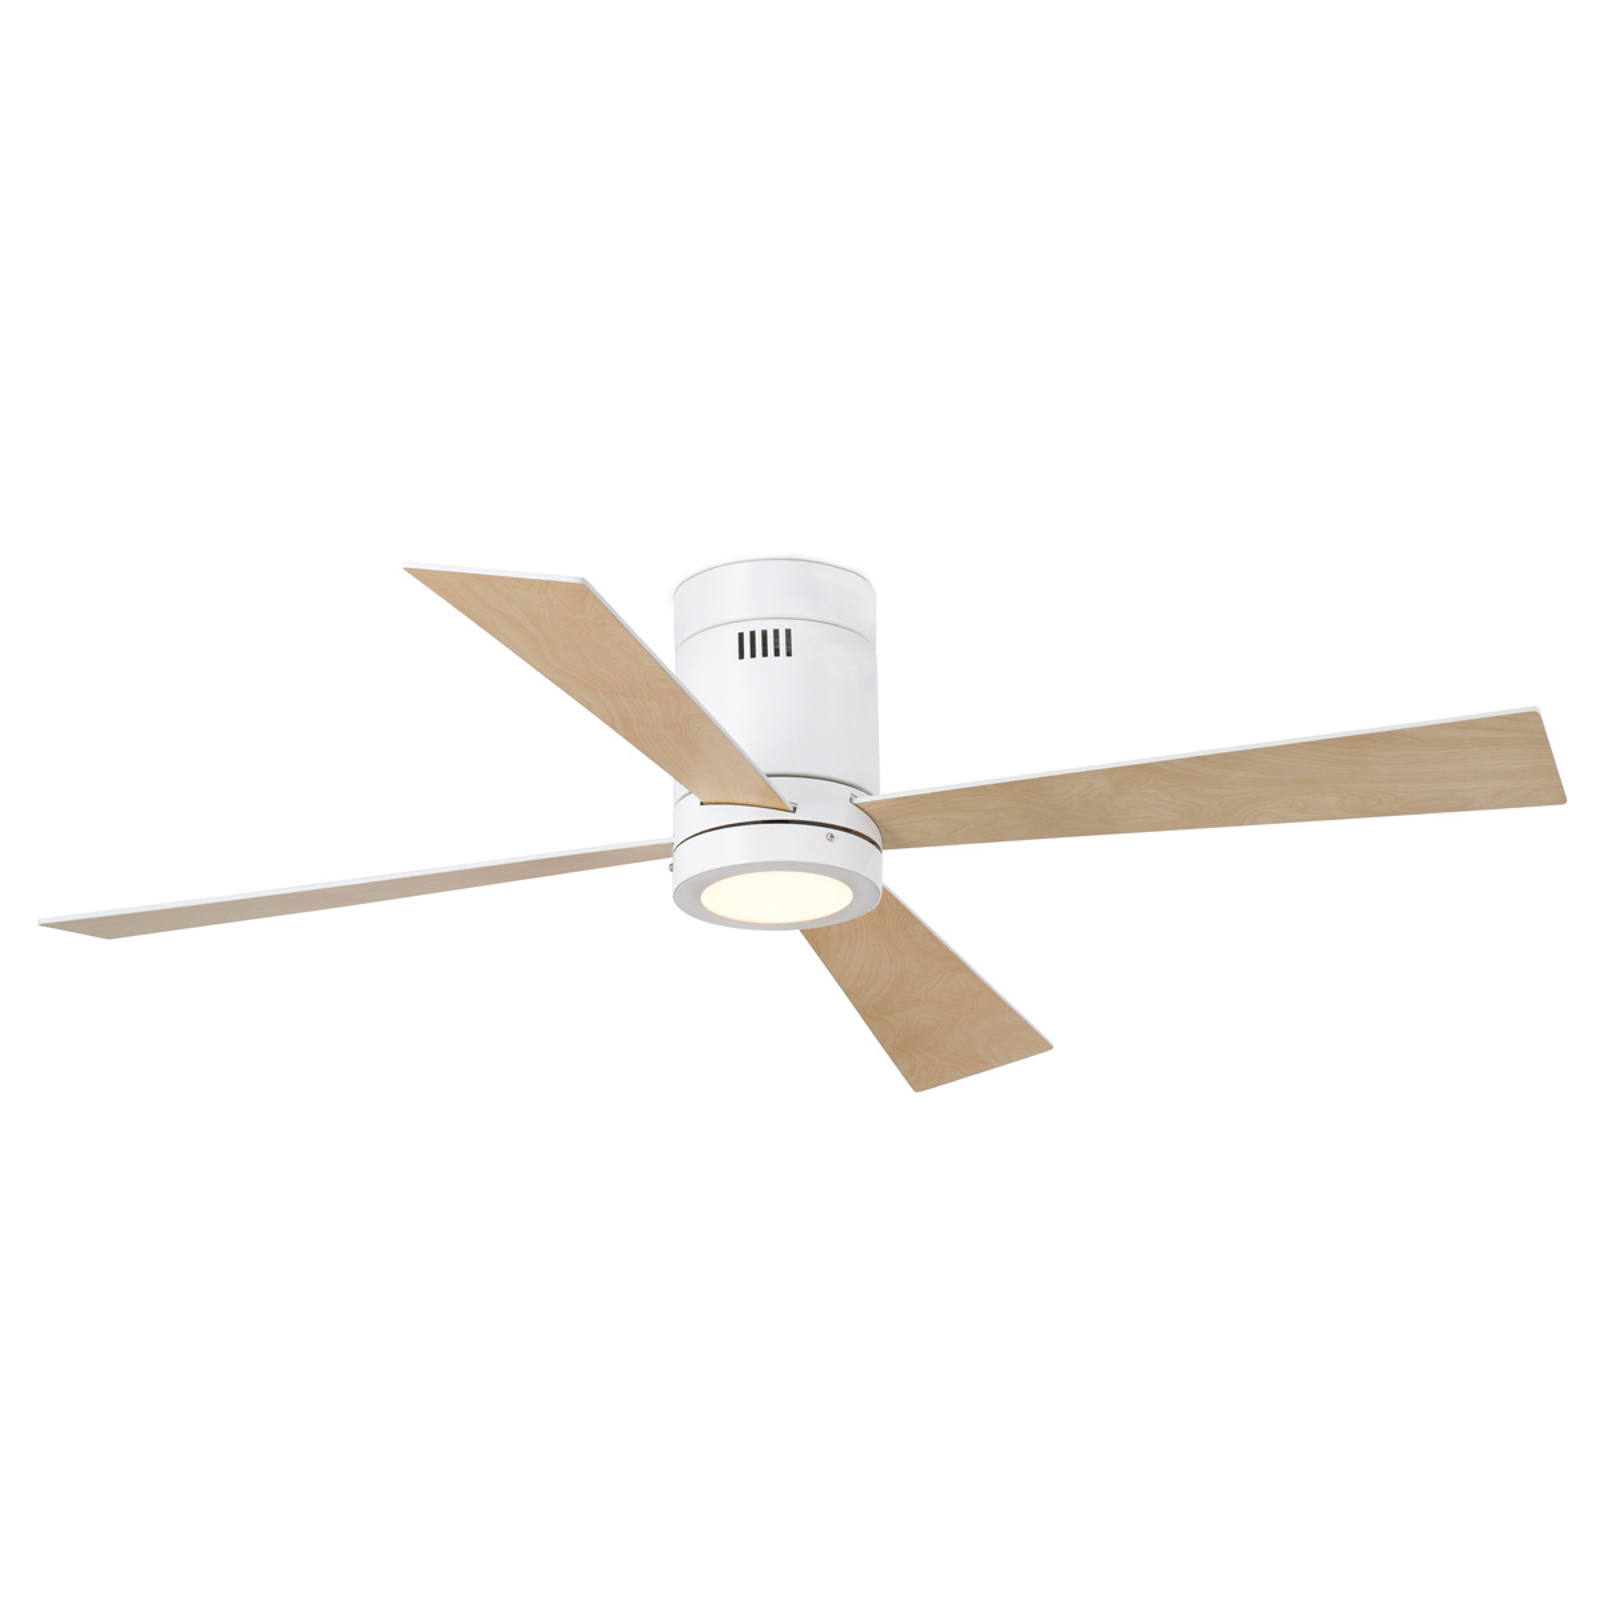 Timor four-blade ceiling fan with LED_3507151_1